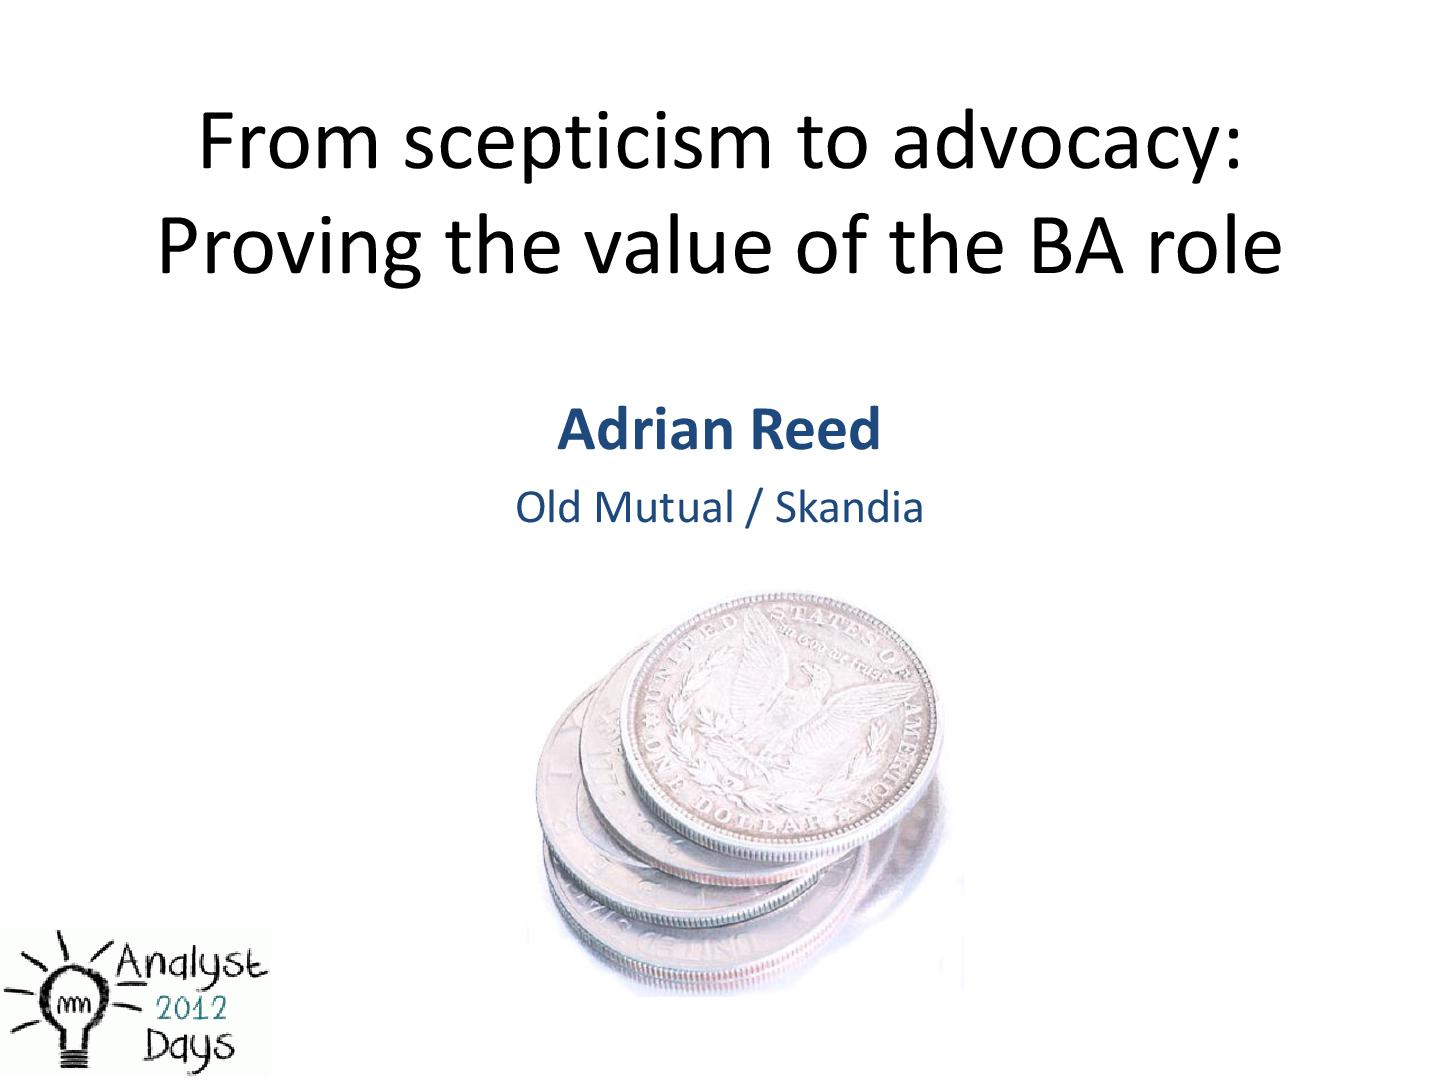 Файл:From scepticism to advocacy. Proving the value of BA role (Adrian Reed, AnalystDays-2012).pdf